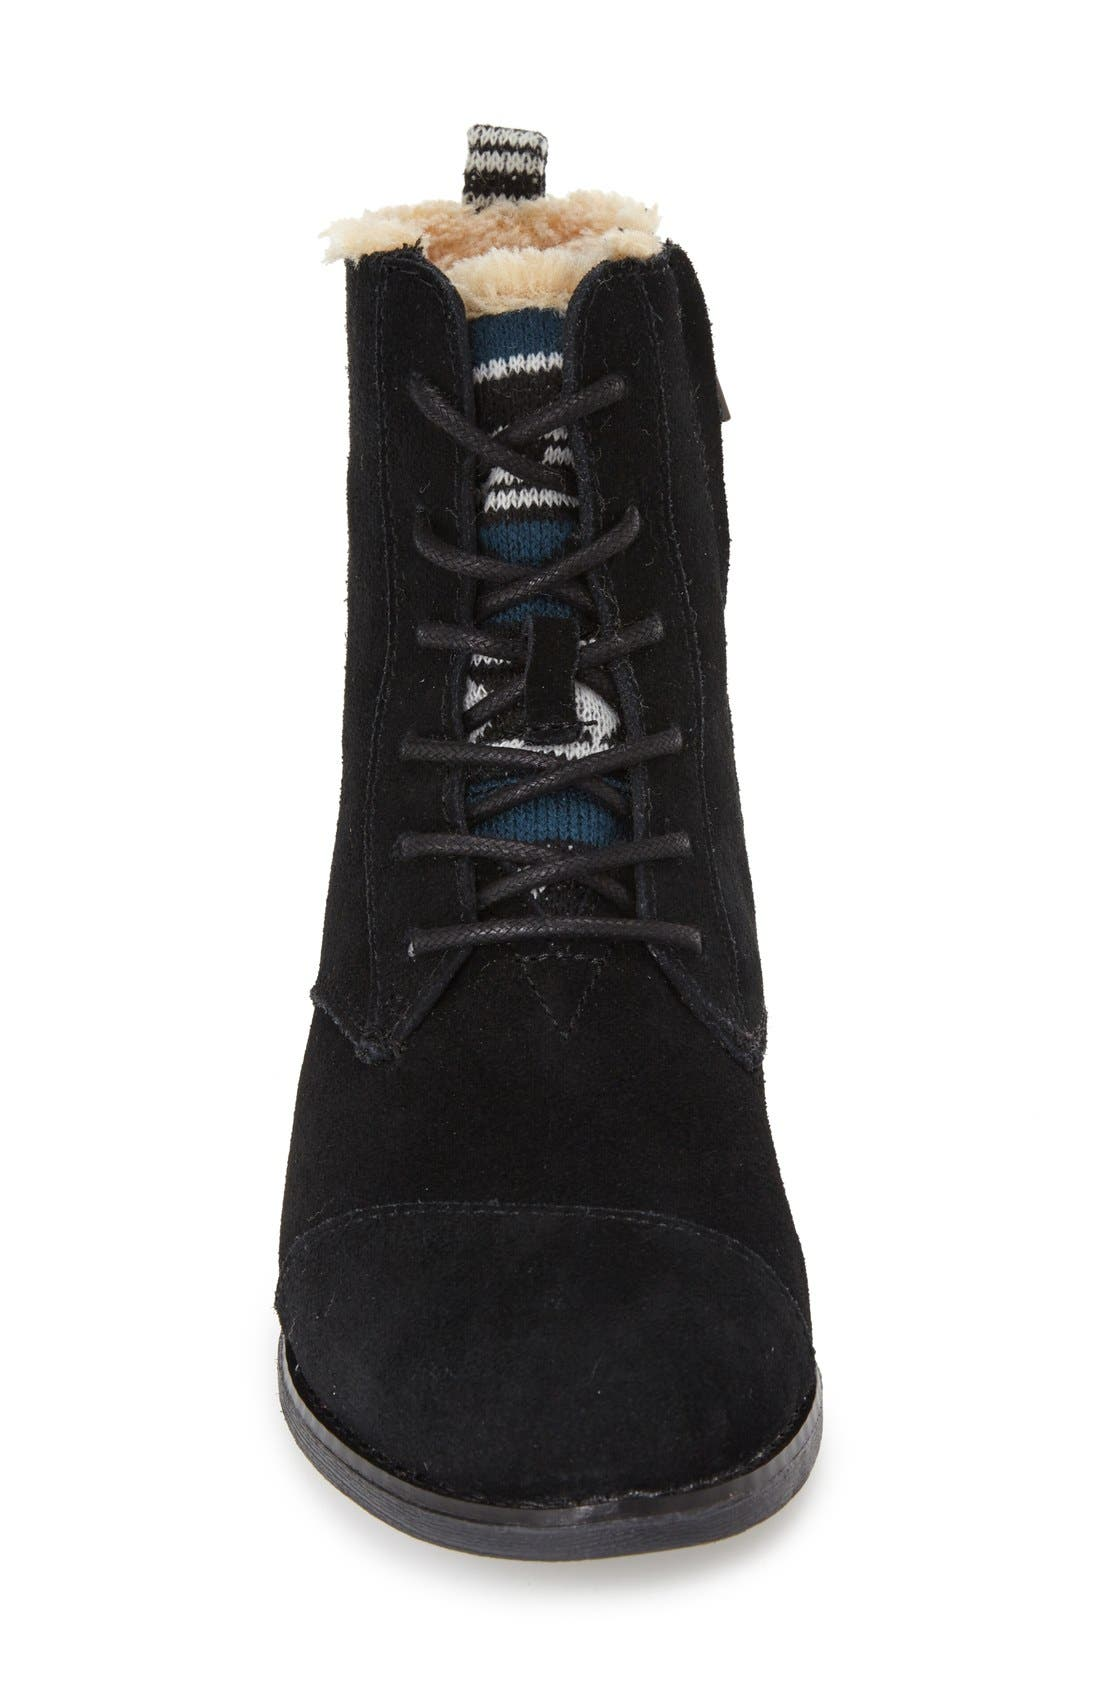 Alternate Image 3  - TOMS 'Alpa' Water Resistant Suede Boot (Women)